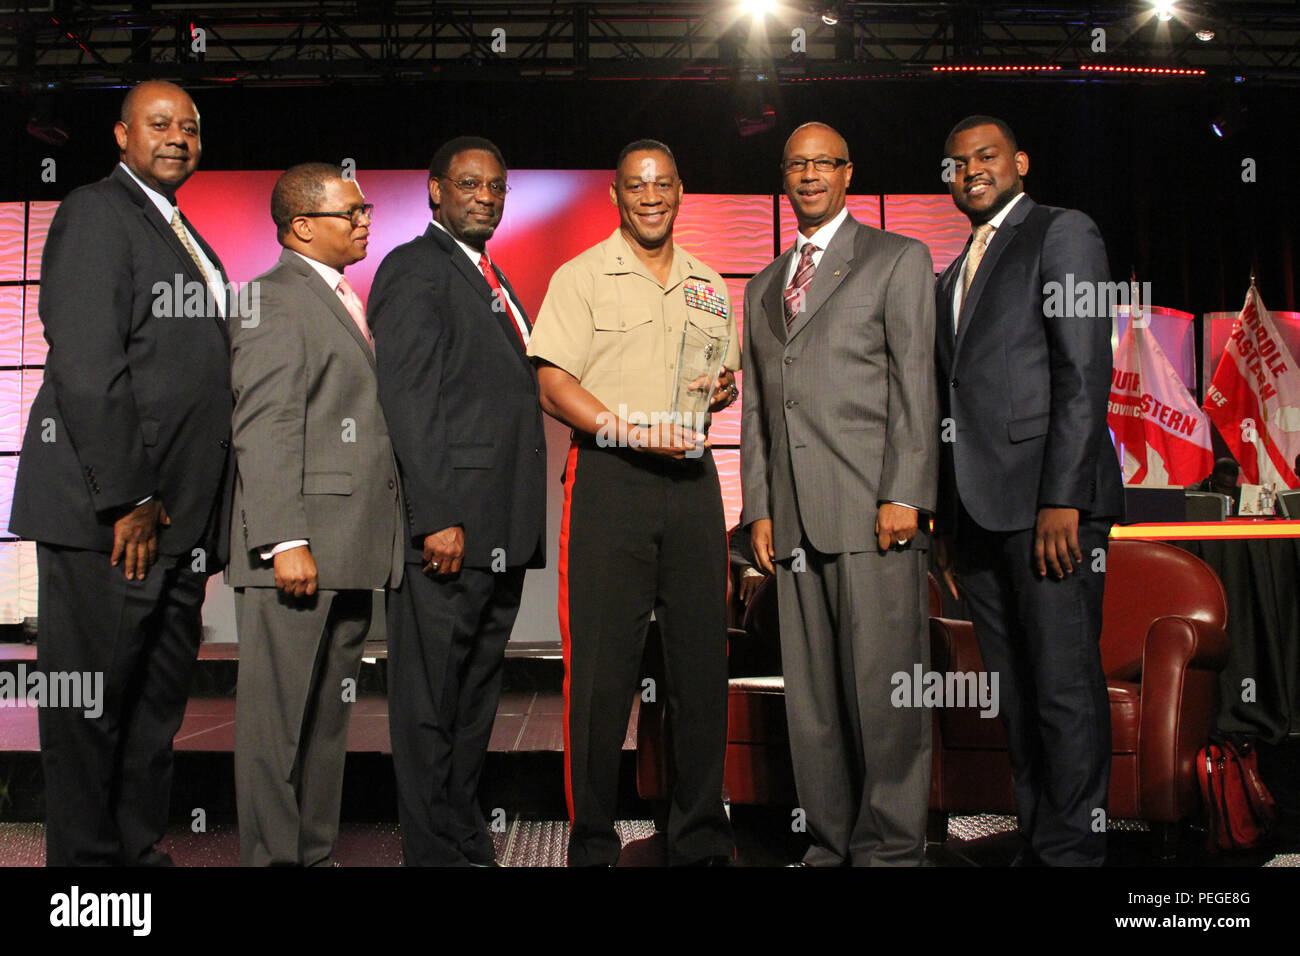 Maj. Gen. Craig Crenshaw, Headquarters Marine Corps assistant deputy commandant for installations and logistics, receives the Kappa Alpha Psi Fraternity Partner Appreciation Award during the Kappa Alpha Psi Fraternity, Inc., 82nd Grand Chapter Meeting held in New Orleans, Aug. 13, 2015. Crenshaw, who is also a member of the fraternity, attended the Grand Chapter Meeting to celebrate its 104th year of service by men of achievement. (U.S. Marine Corps photo by Sgt. Rubin J. Tan) - Stock Image